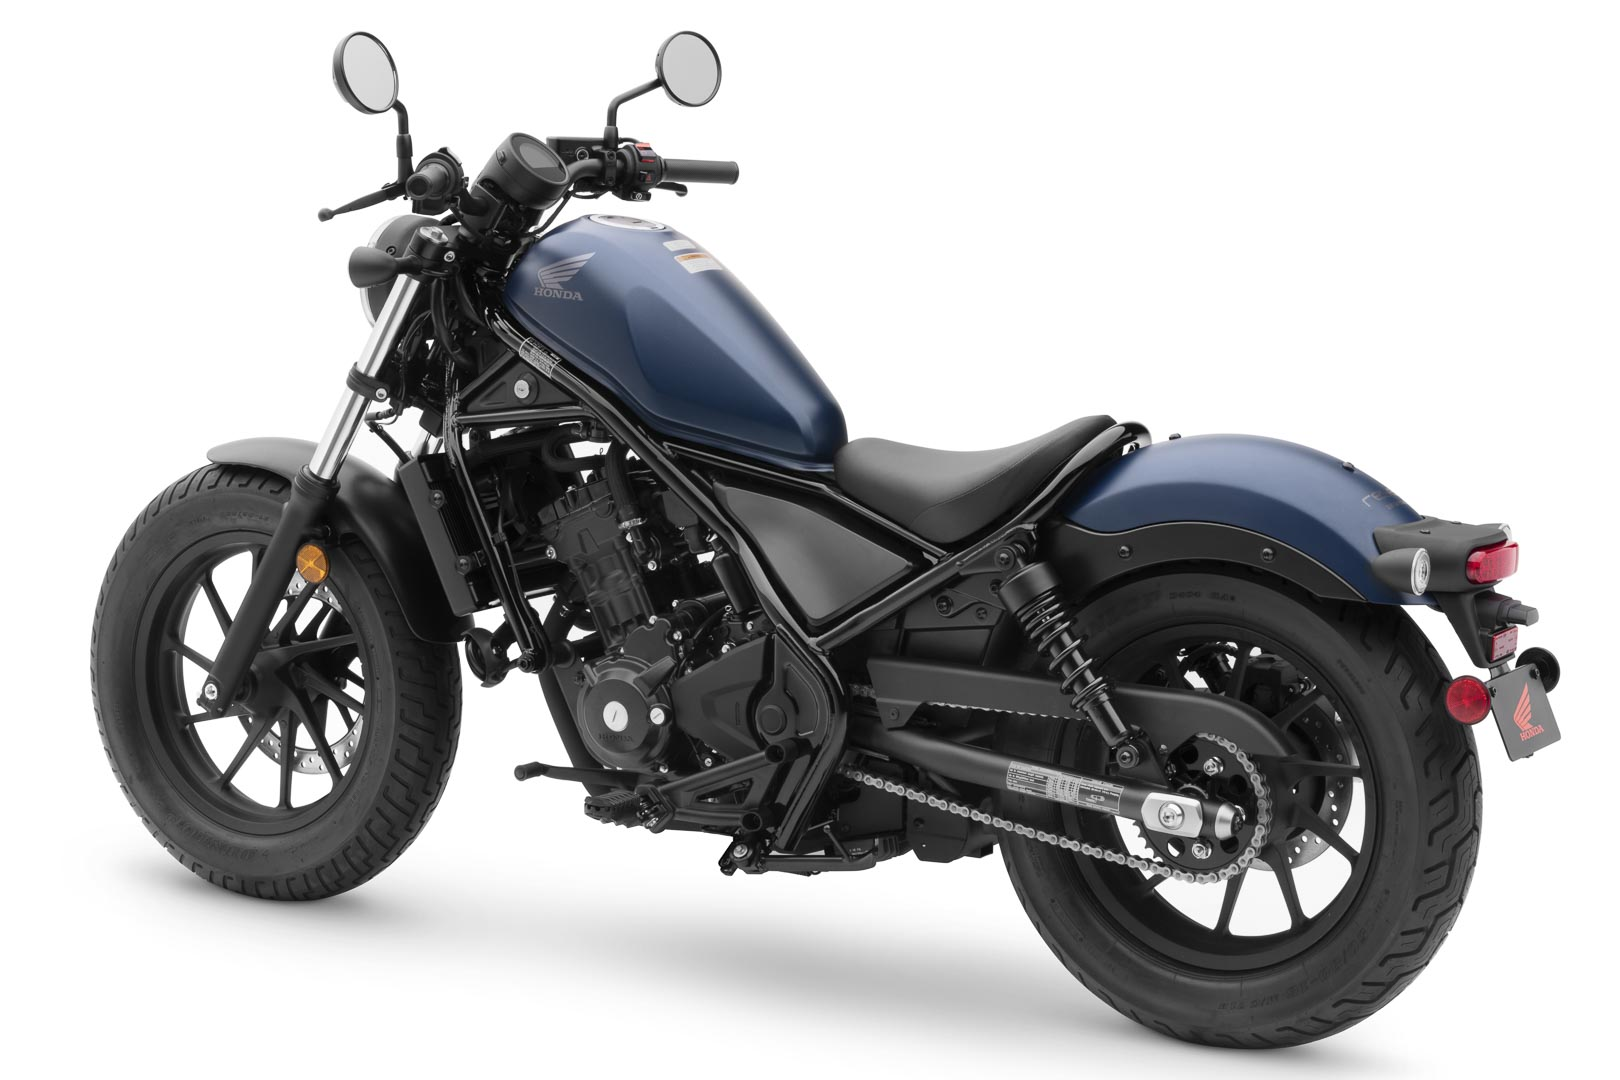 2020 Honda Rebel 500 And Rebel 300 First Look (8 Fast Facts